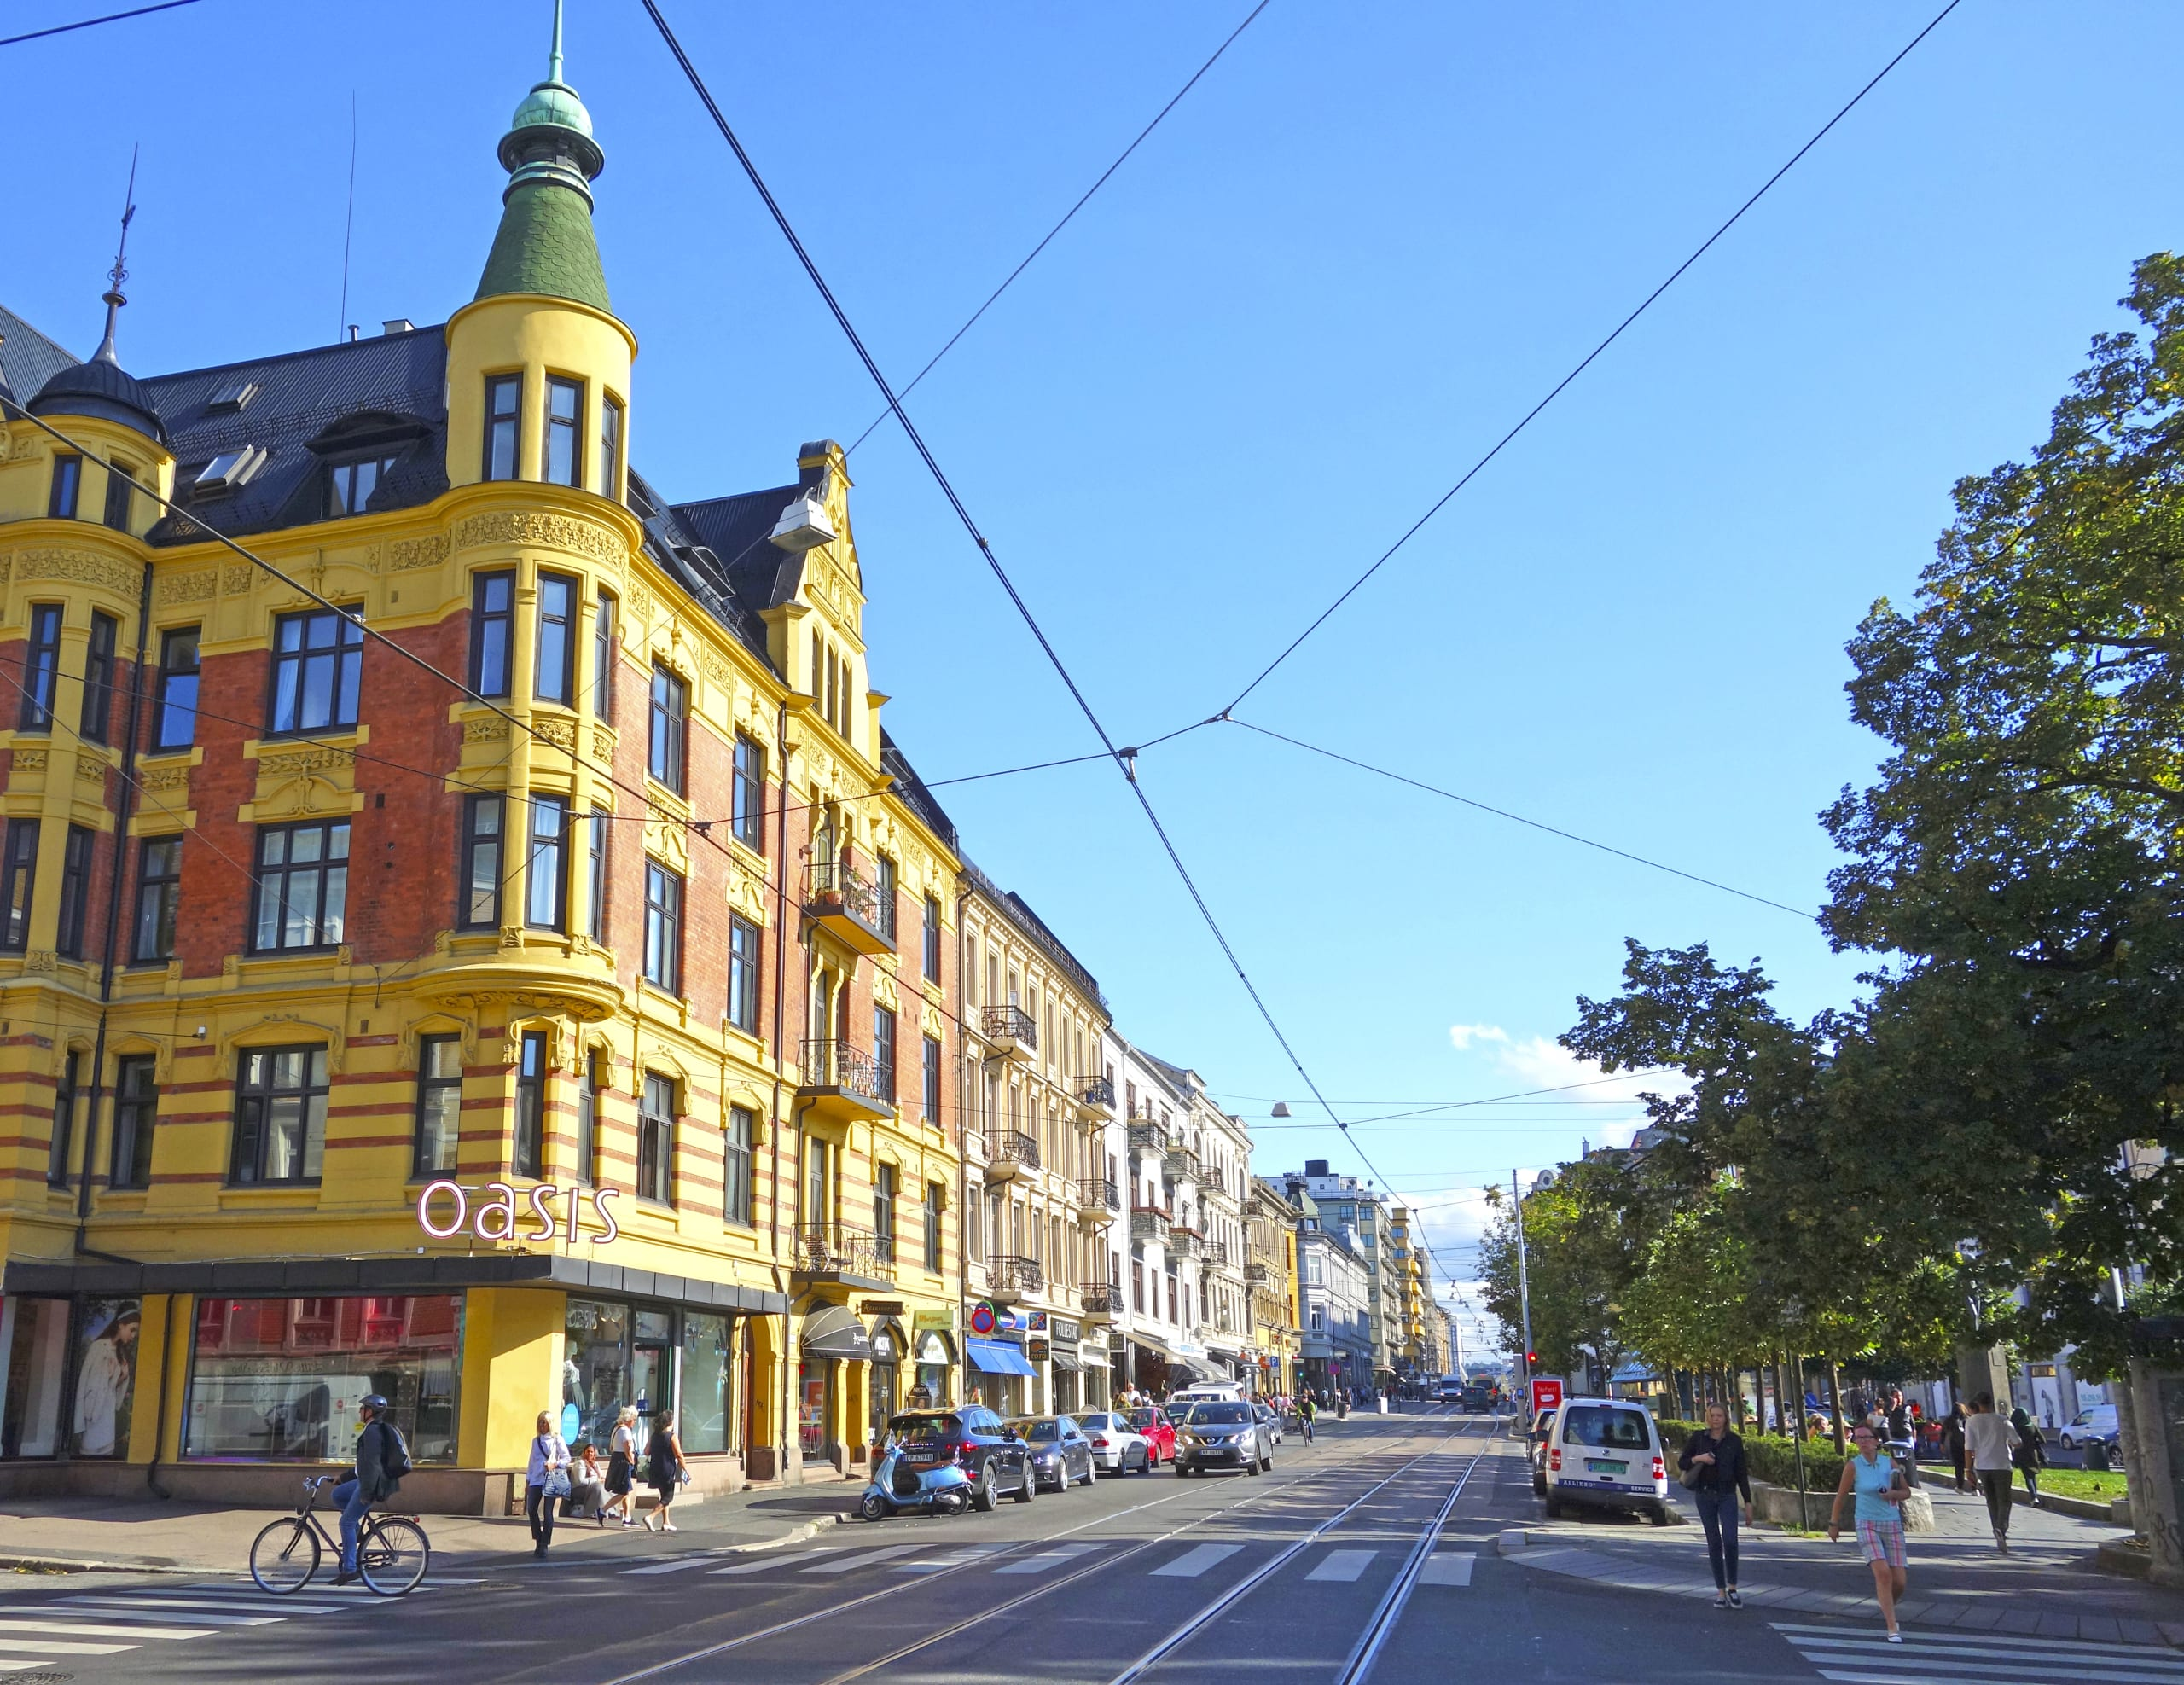 Bogstadveien shopping street in Oslo